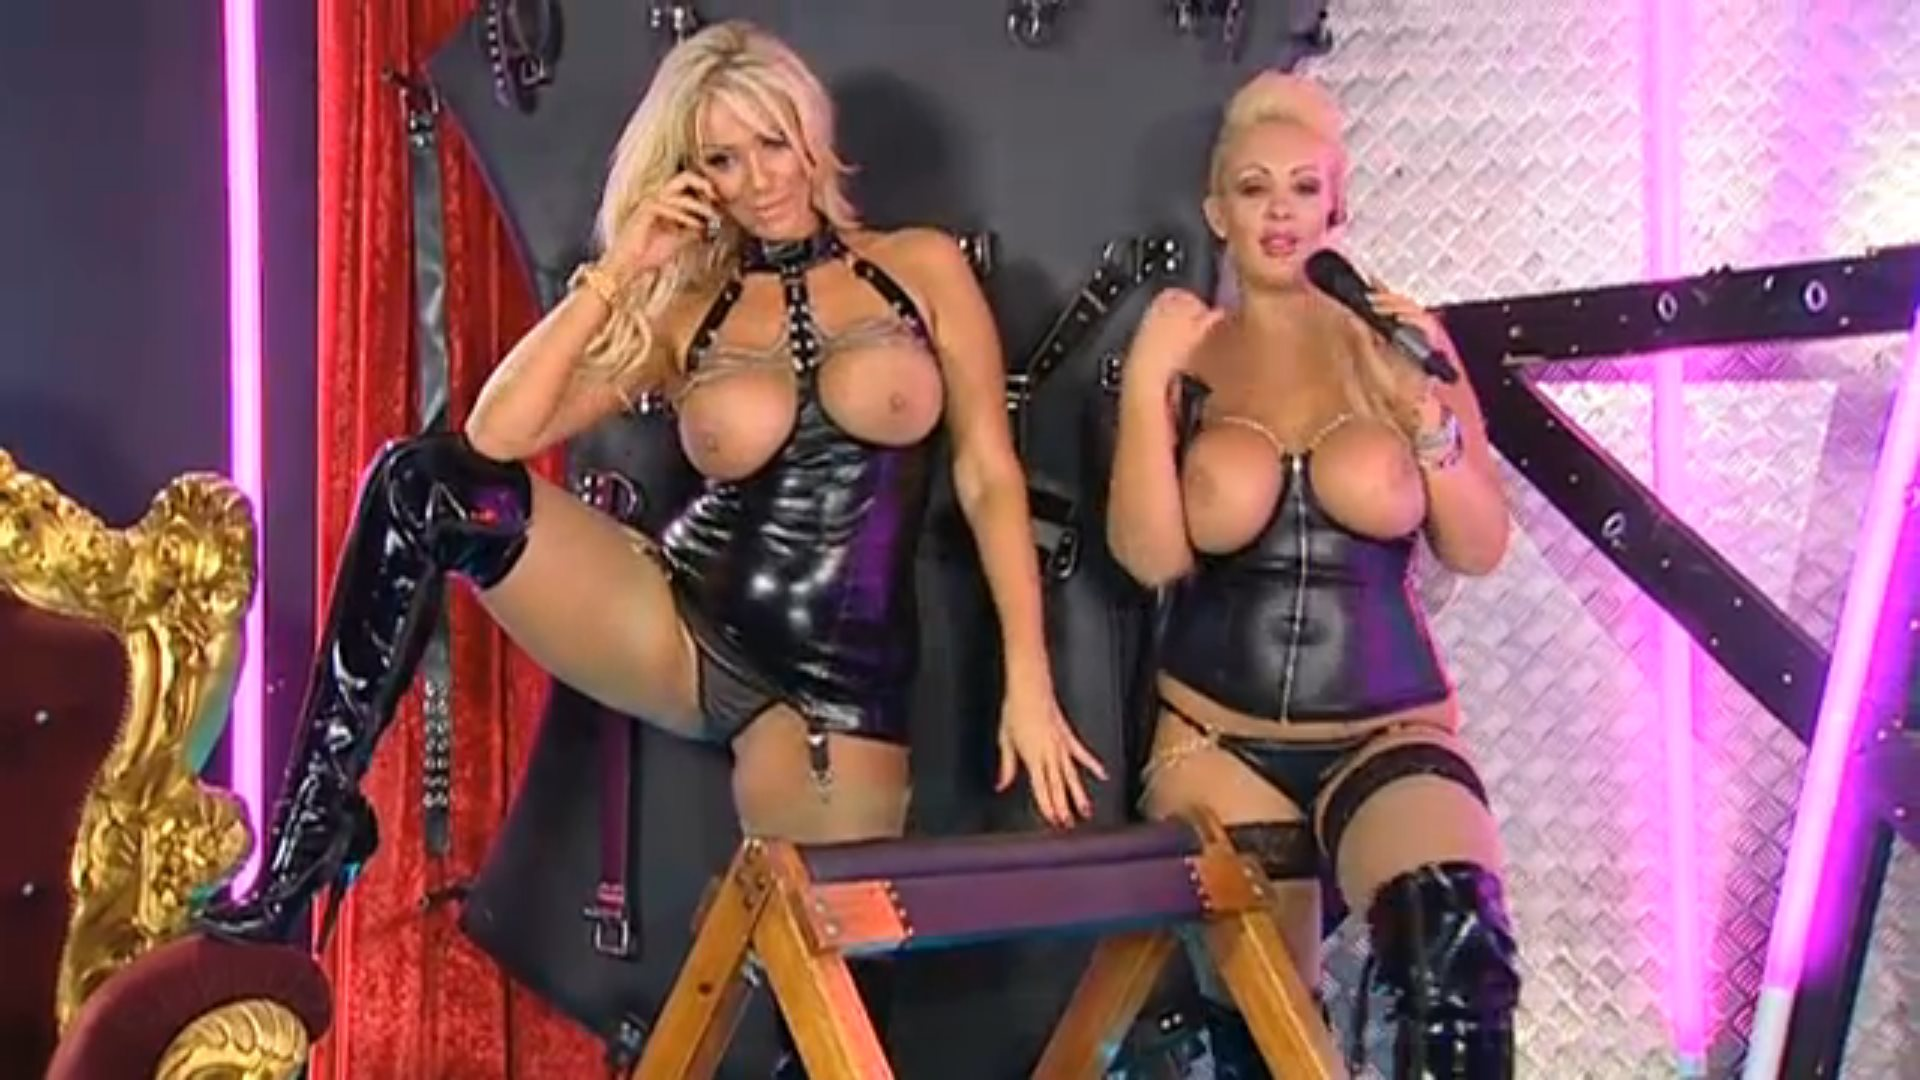 Dannii Harwood Lucy Zara Stunning lucy zara & levi domination show on playboy tv chat